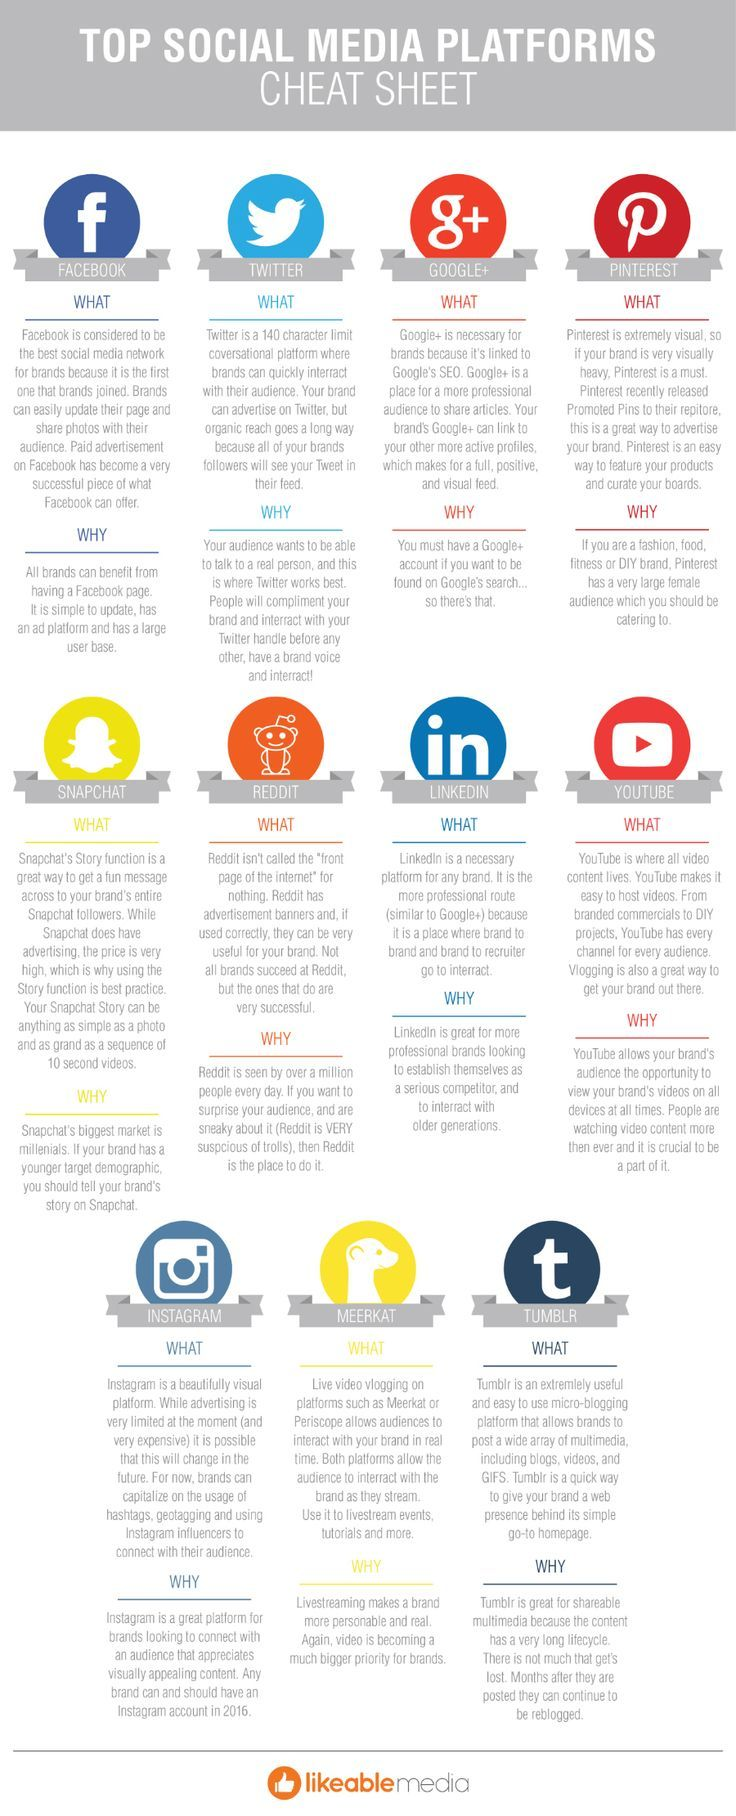 Top Social Media Platforms Cheat Sheet #infographic #SocialMedia: